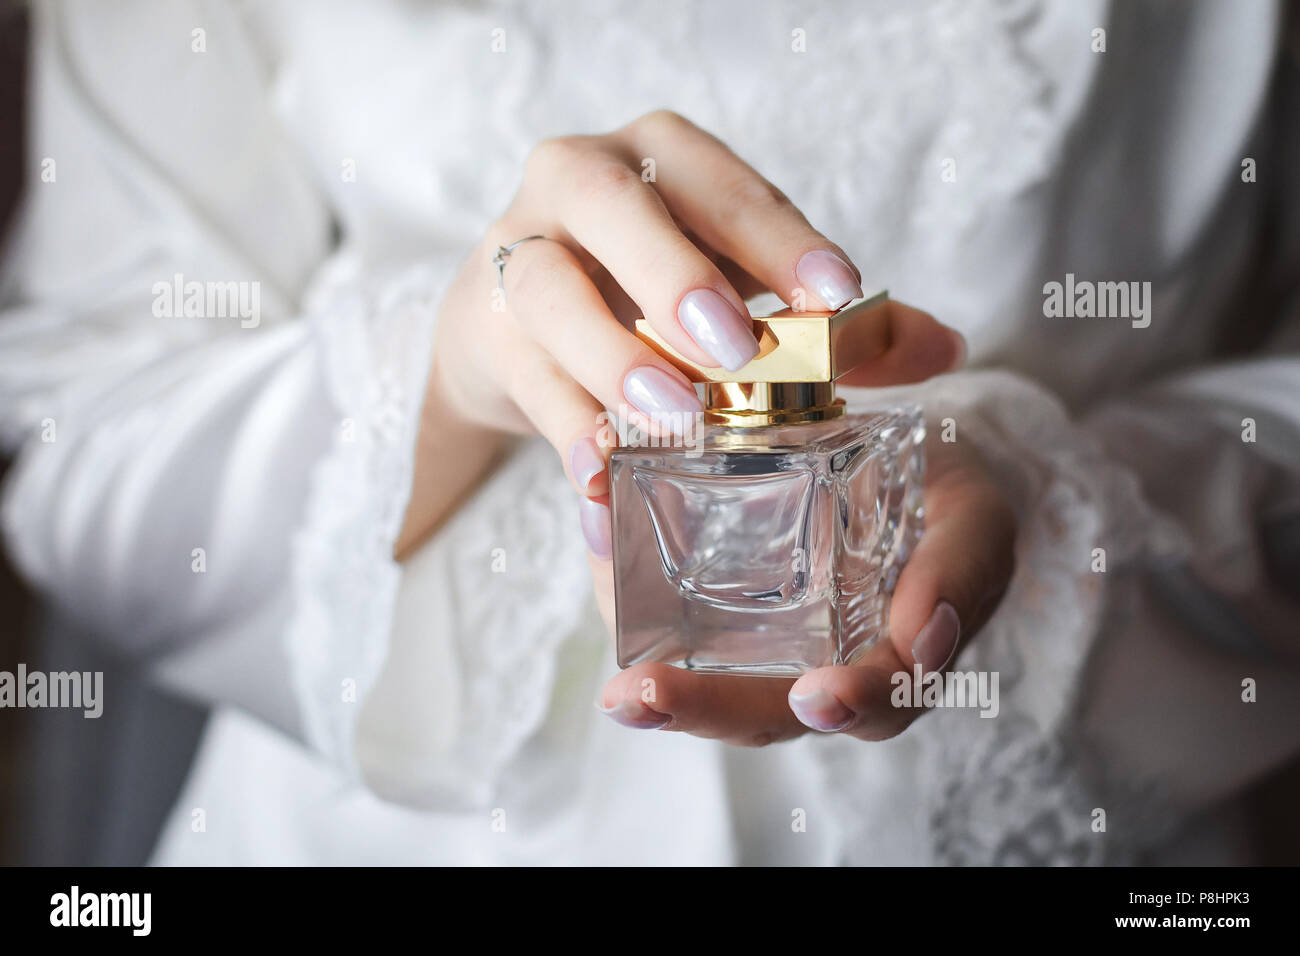 bride holding in hands a flacon of luxury perfume - Stock Image